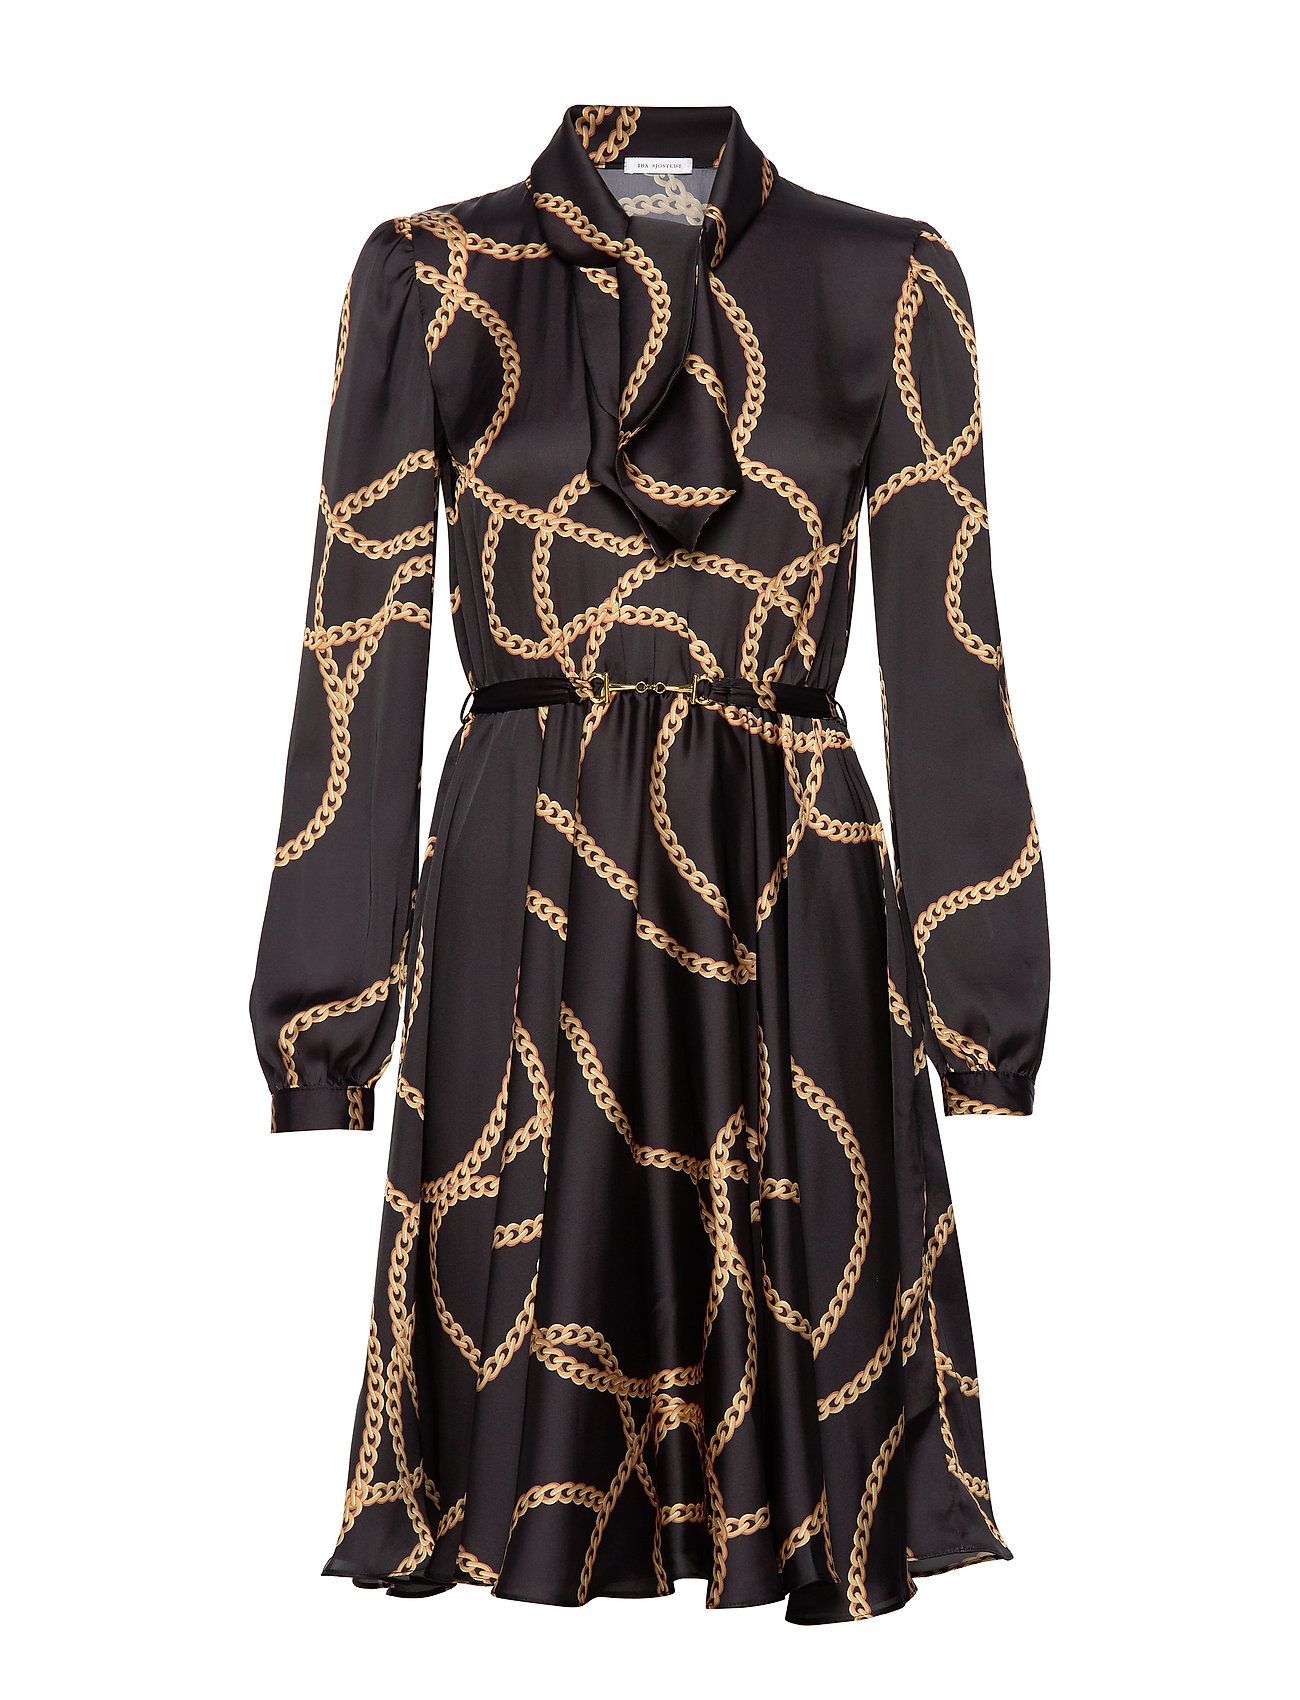 Ida Sjöstedt Shiver Dress - BLACK/GOLD